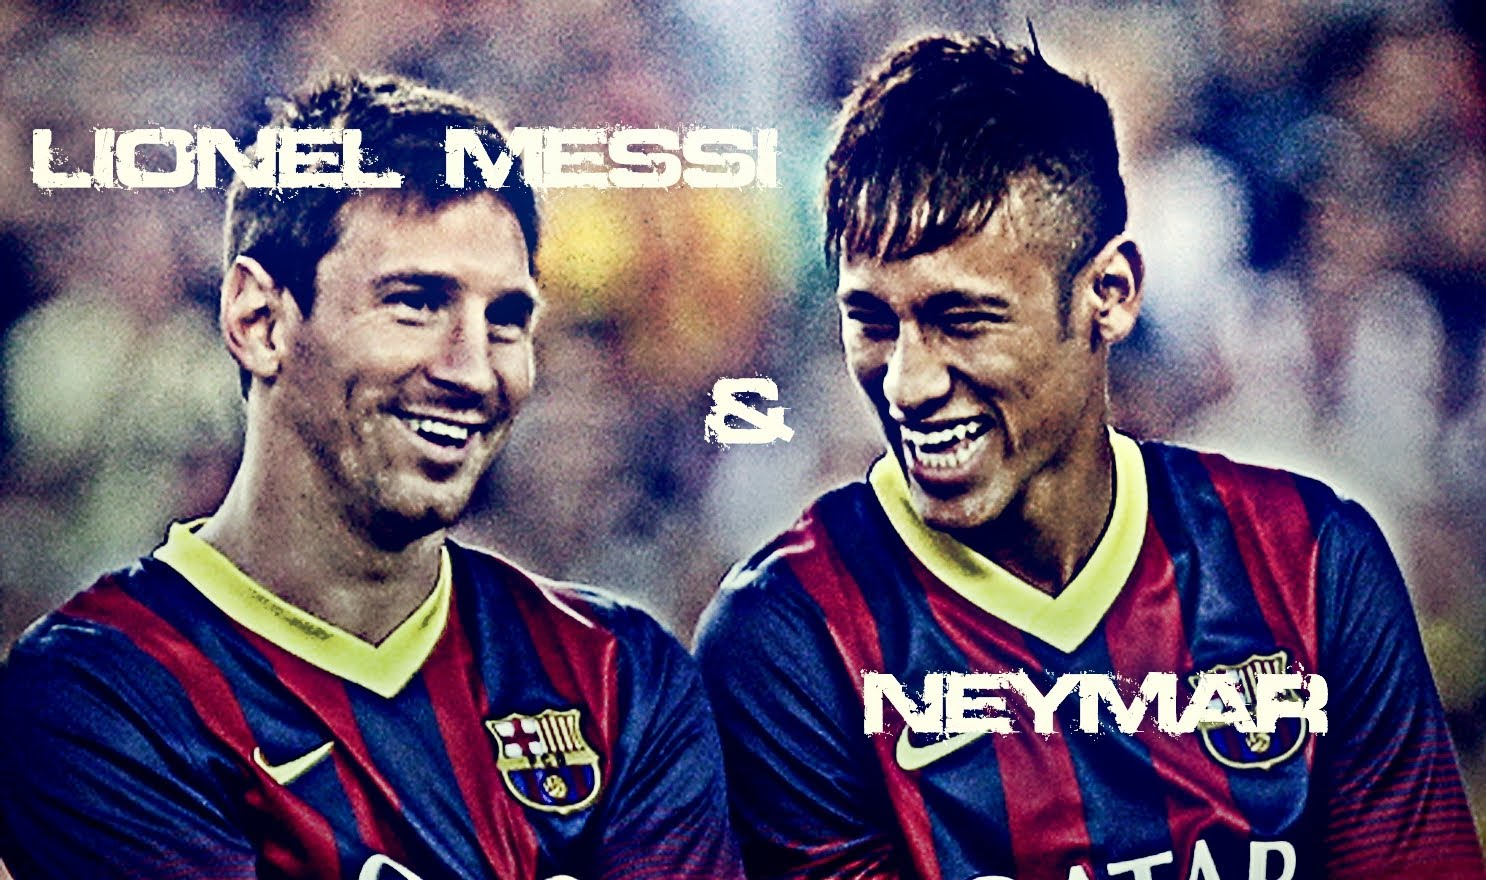 Neymar images lionel messi nd neymar jr. HD wallpaper and ...